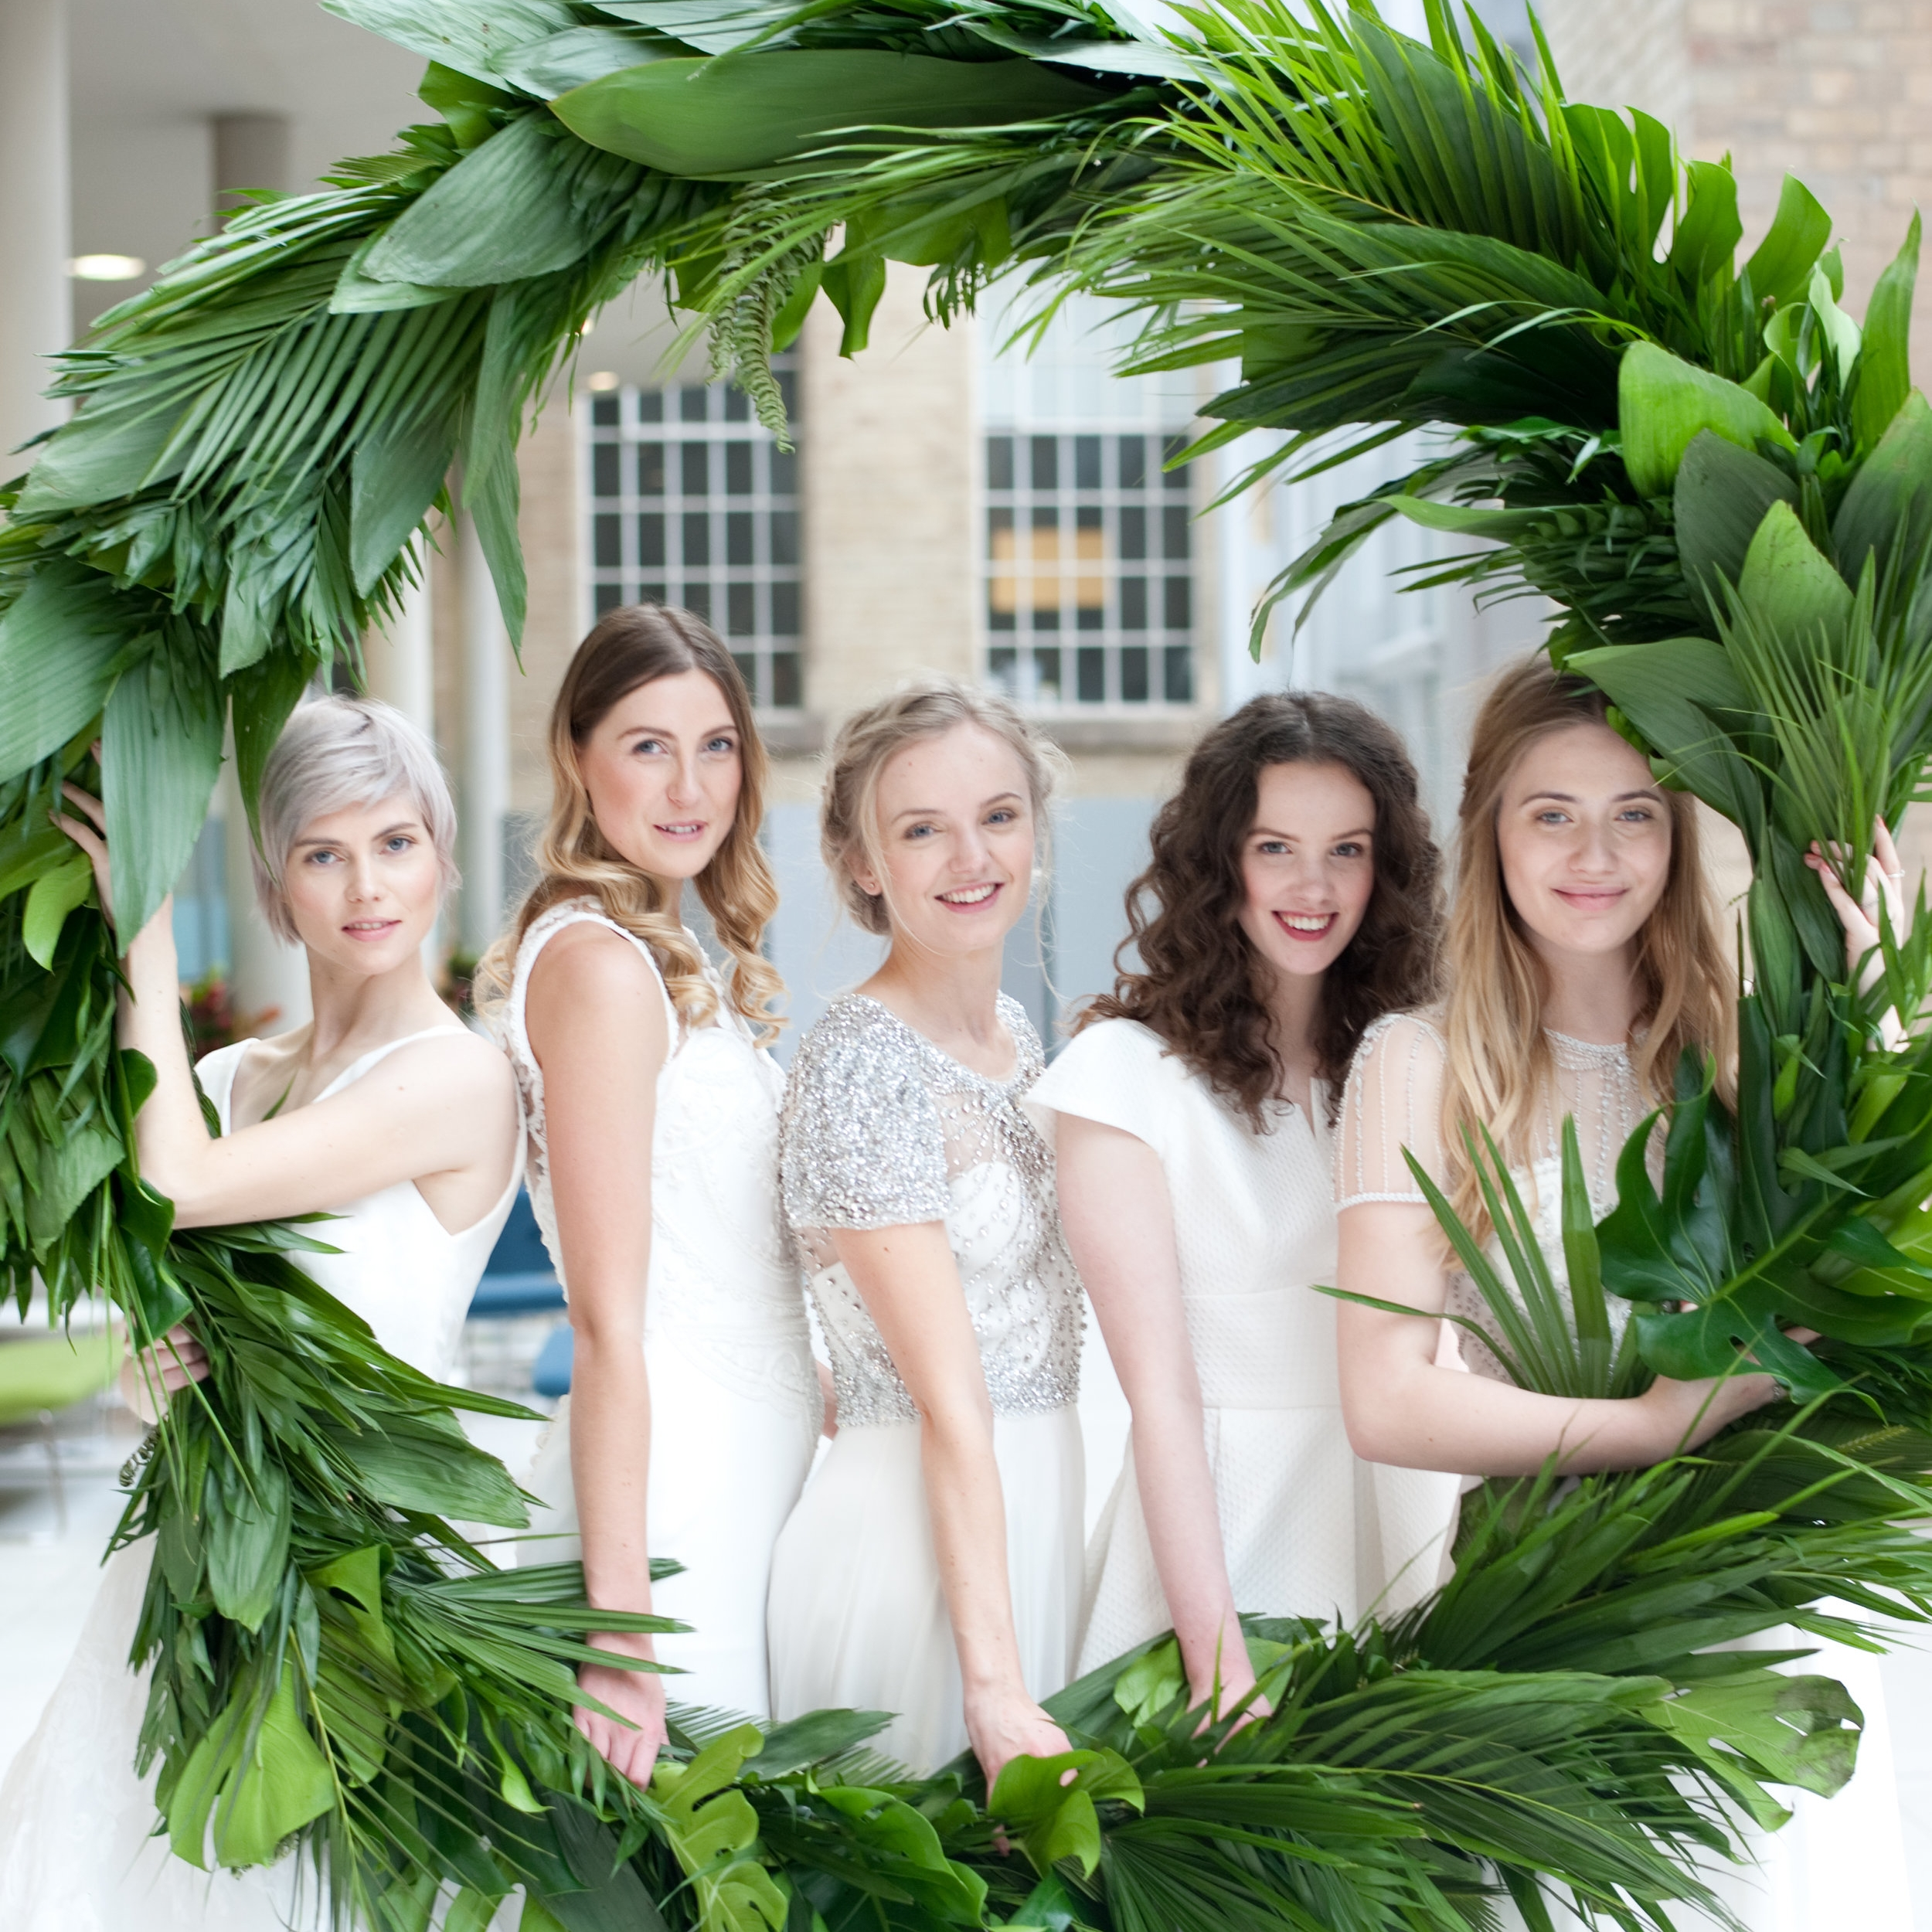 Do you want to be an 'Oh Happy Day' bride? -